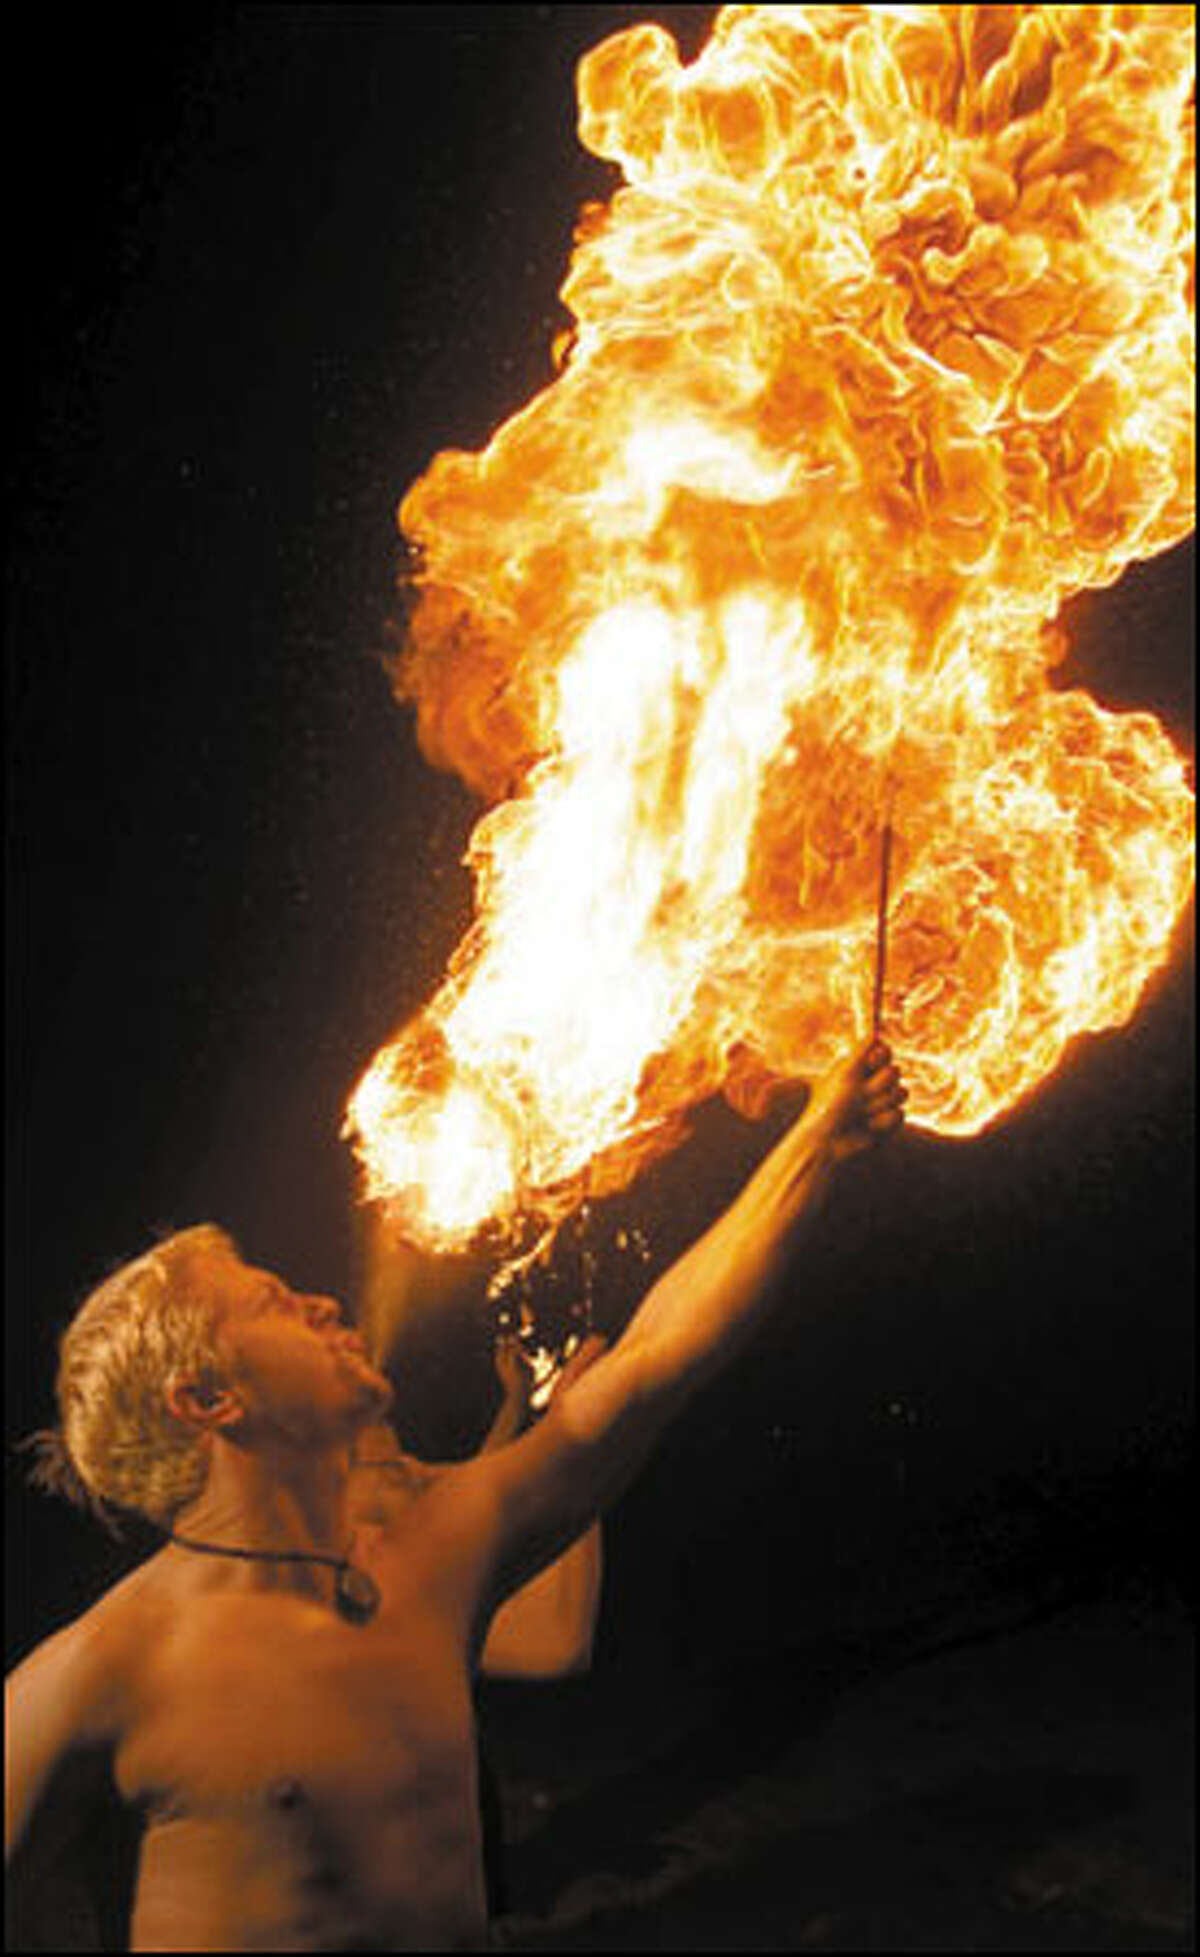 Adam Henderson performs fire blasts. Blowing fire is among the most dangerous fire arts because of the risk to the face and lungs and because the body absorbs the toxic fuel used to make the blaze through the mouth and gums.